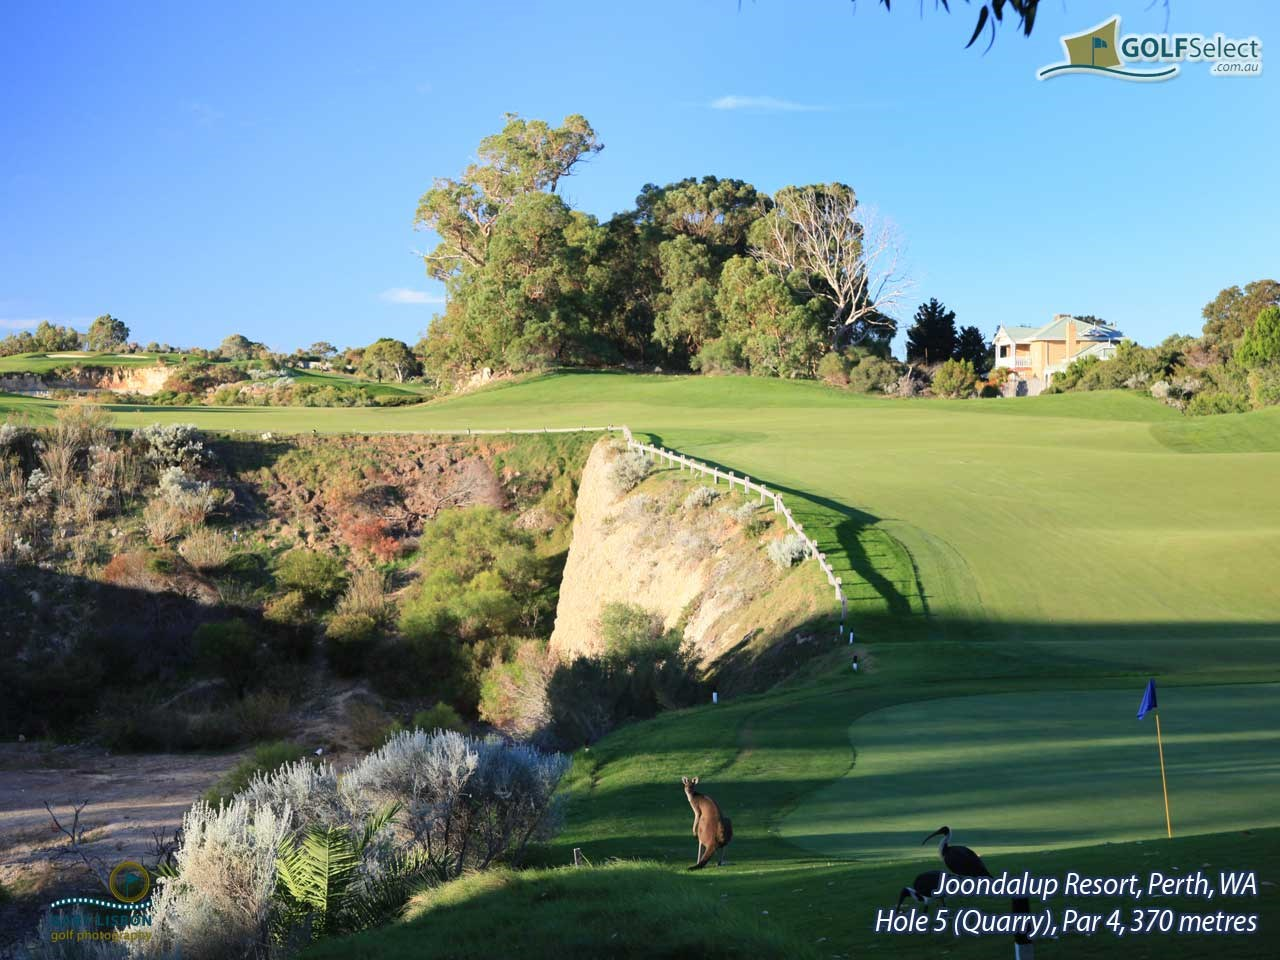 Joondalup Resort Hole 5 (Quarry), Par 4, 370 metres